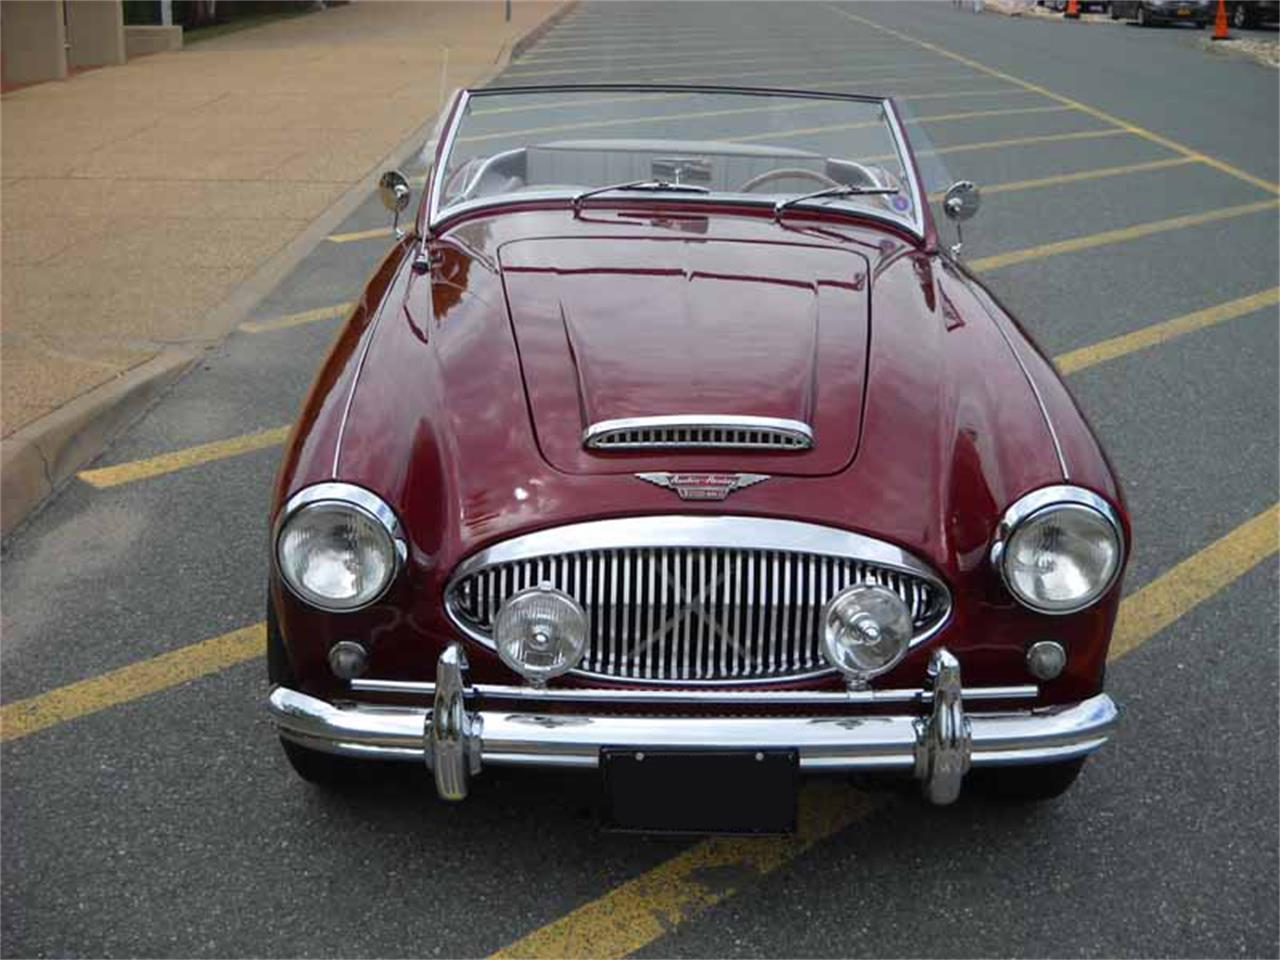 Large Picture of 1962 Austin-Healey 3000 Mk I BT7 located in Virginia Offered by Gassman Automotive - JFK9